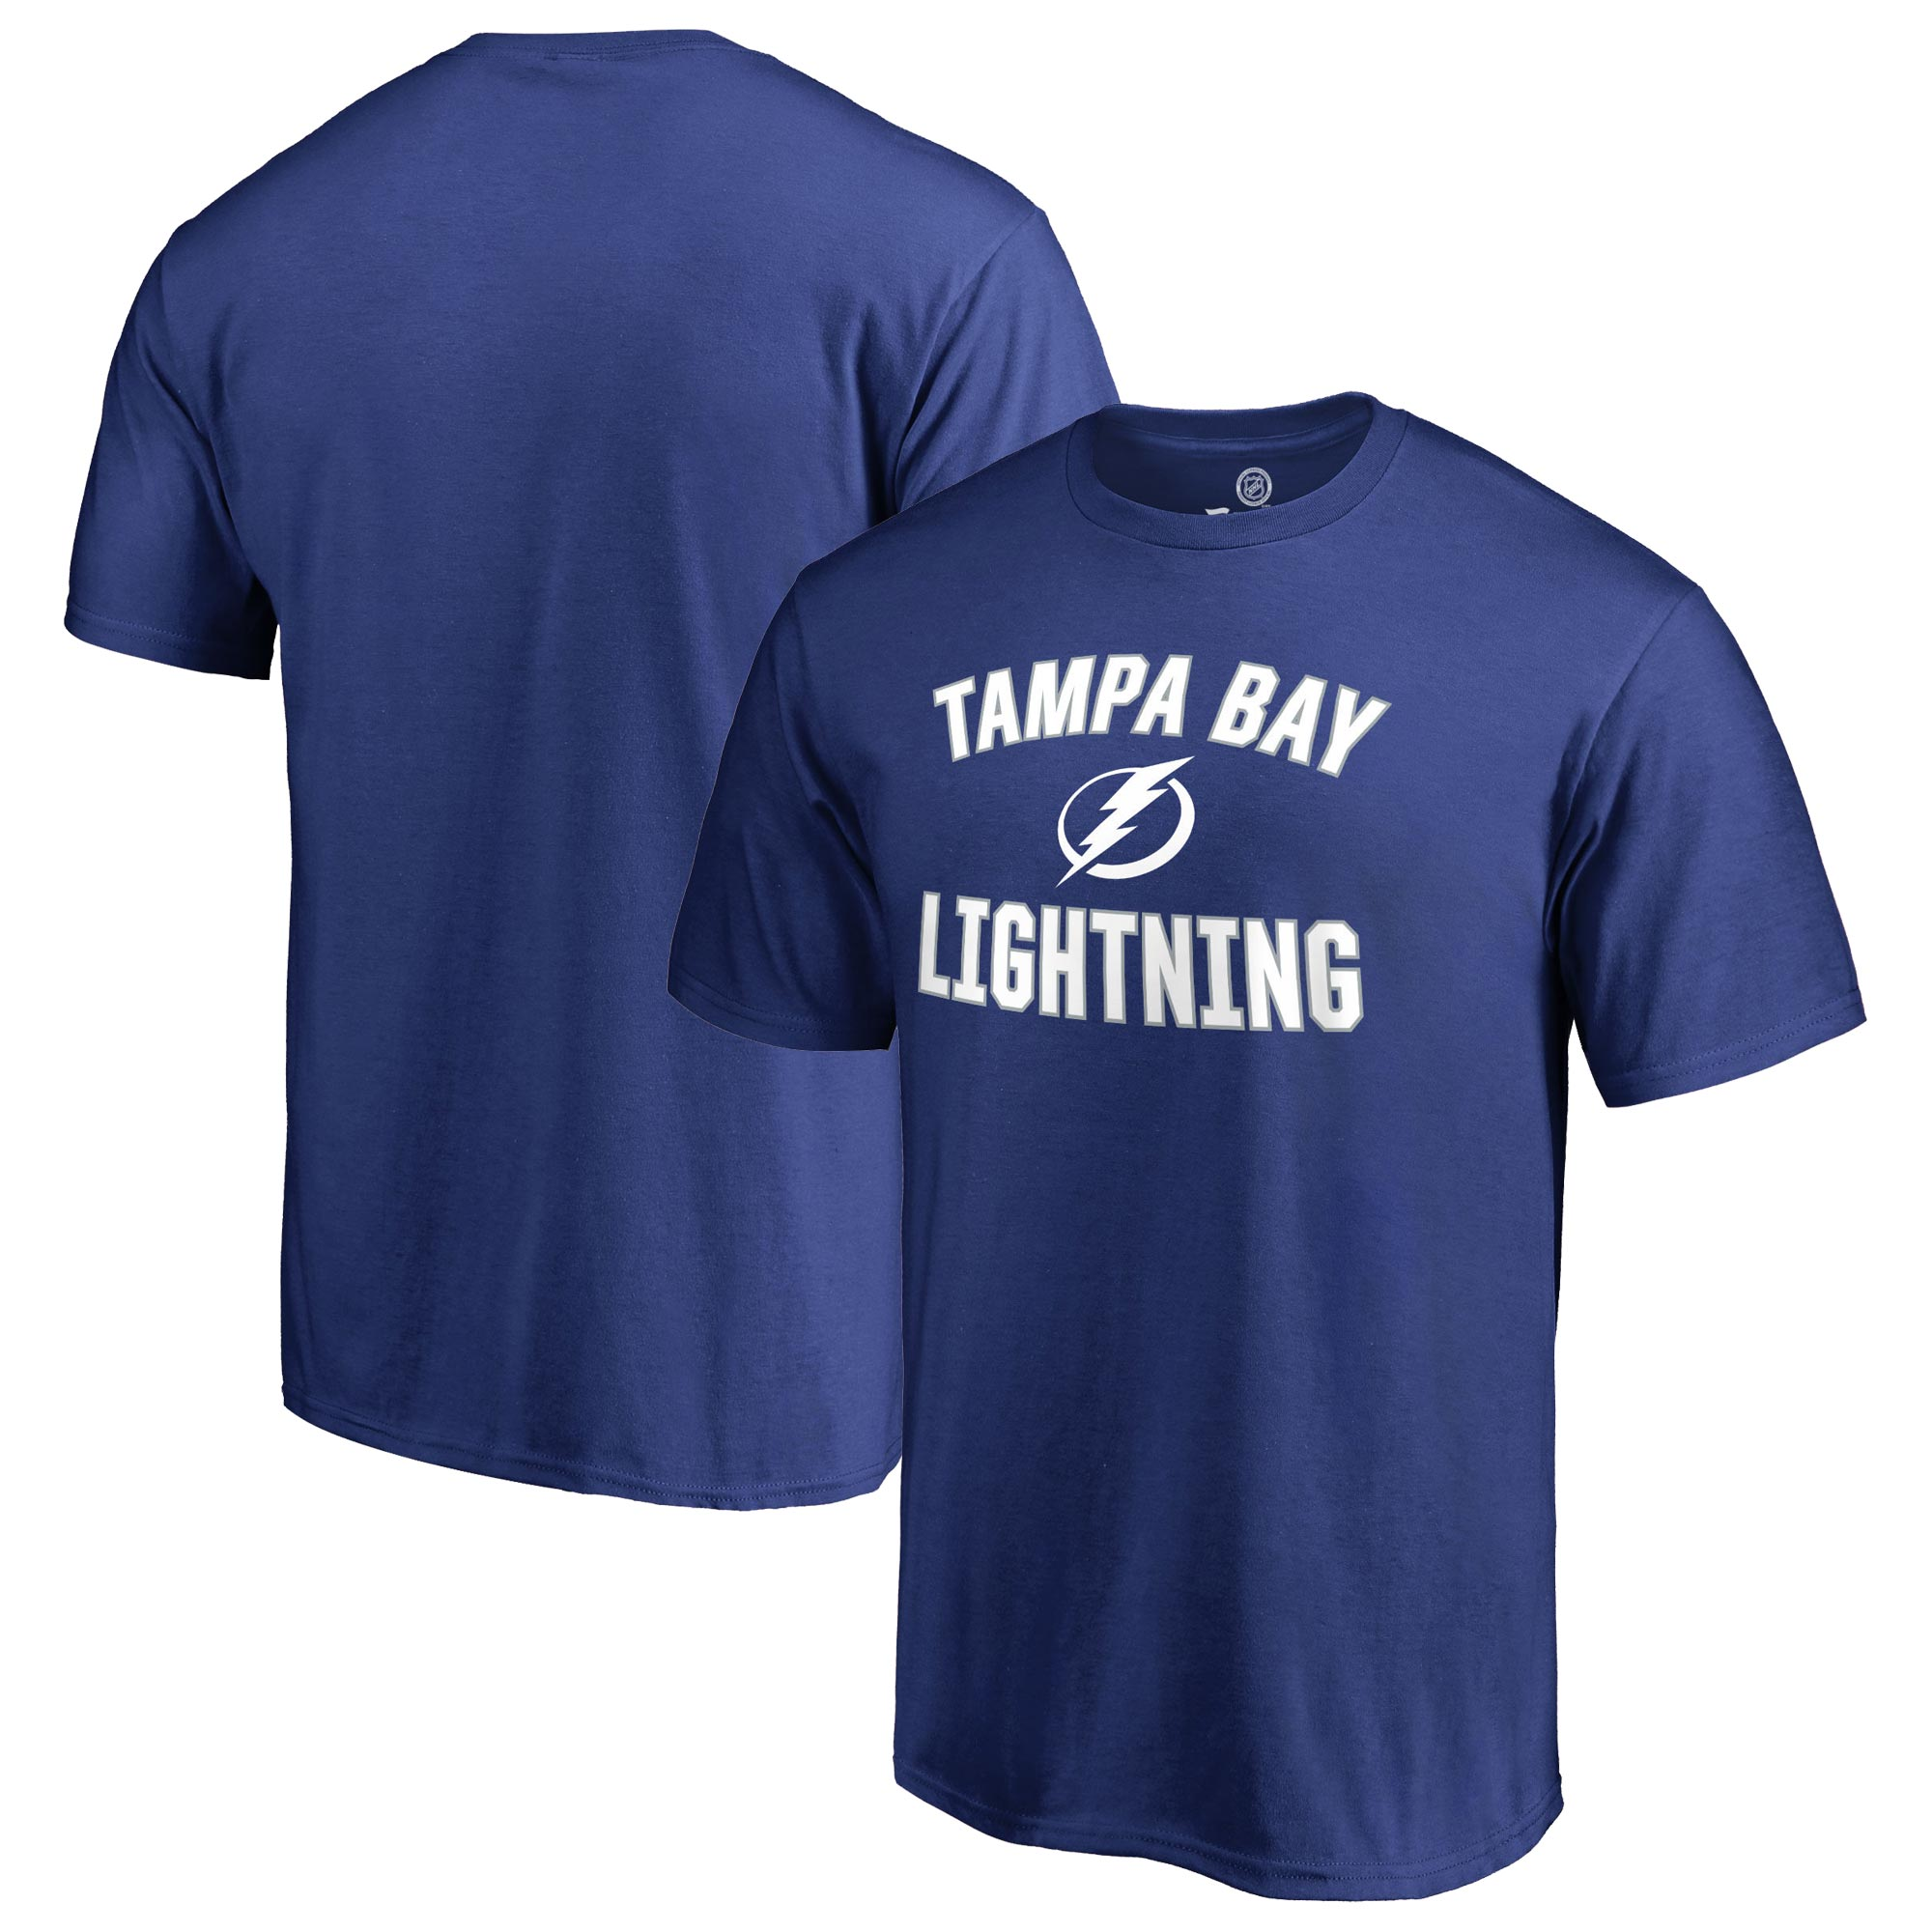 Tampa Bay Lightning Victory Arch T-Shirt - Blue